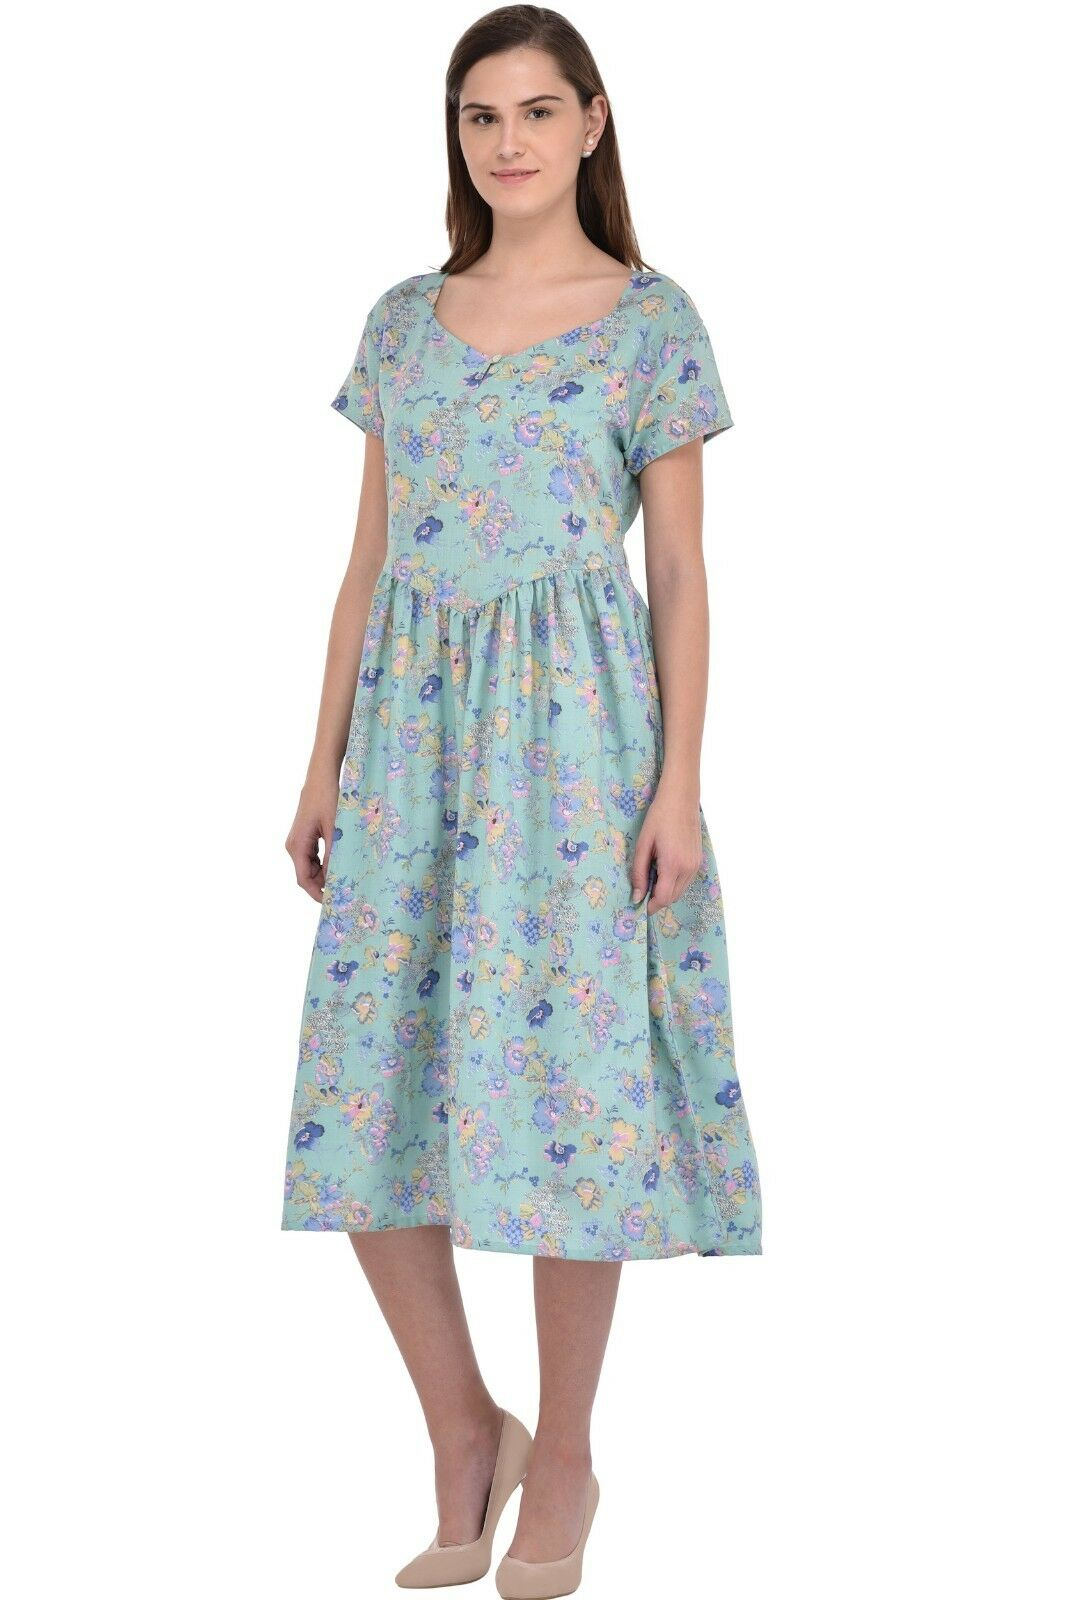 Cotton Lane Wrinkle-resistant Dress D53PTD. Sizes to to to 38 d94408